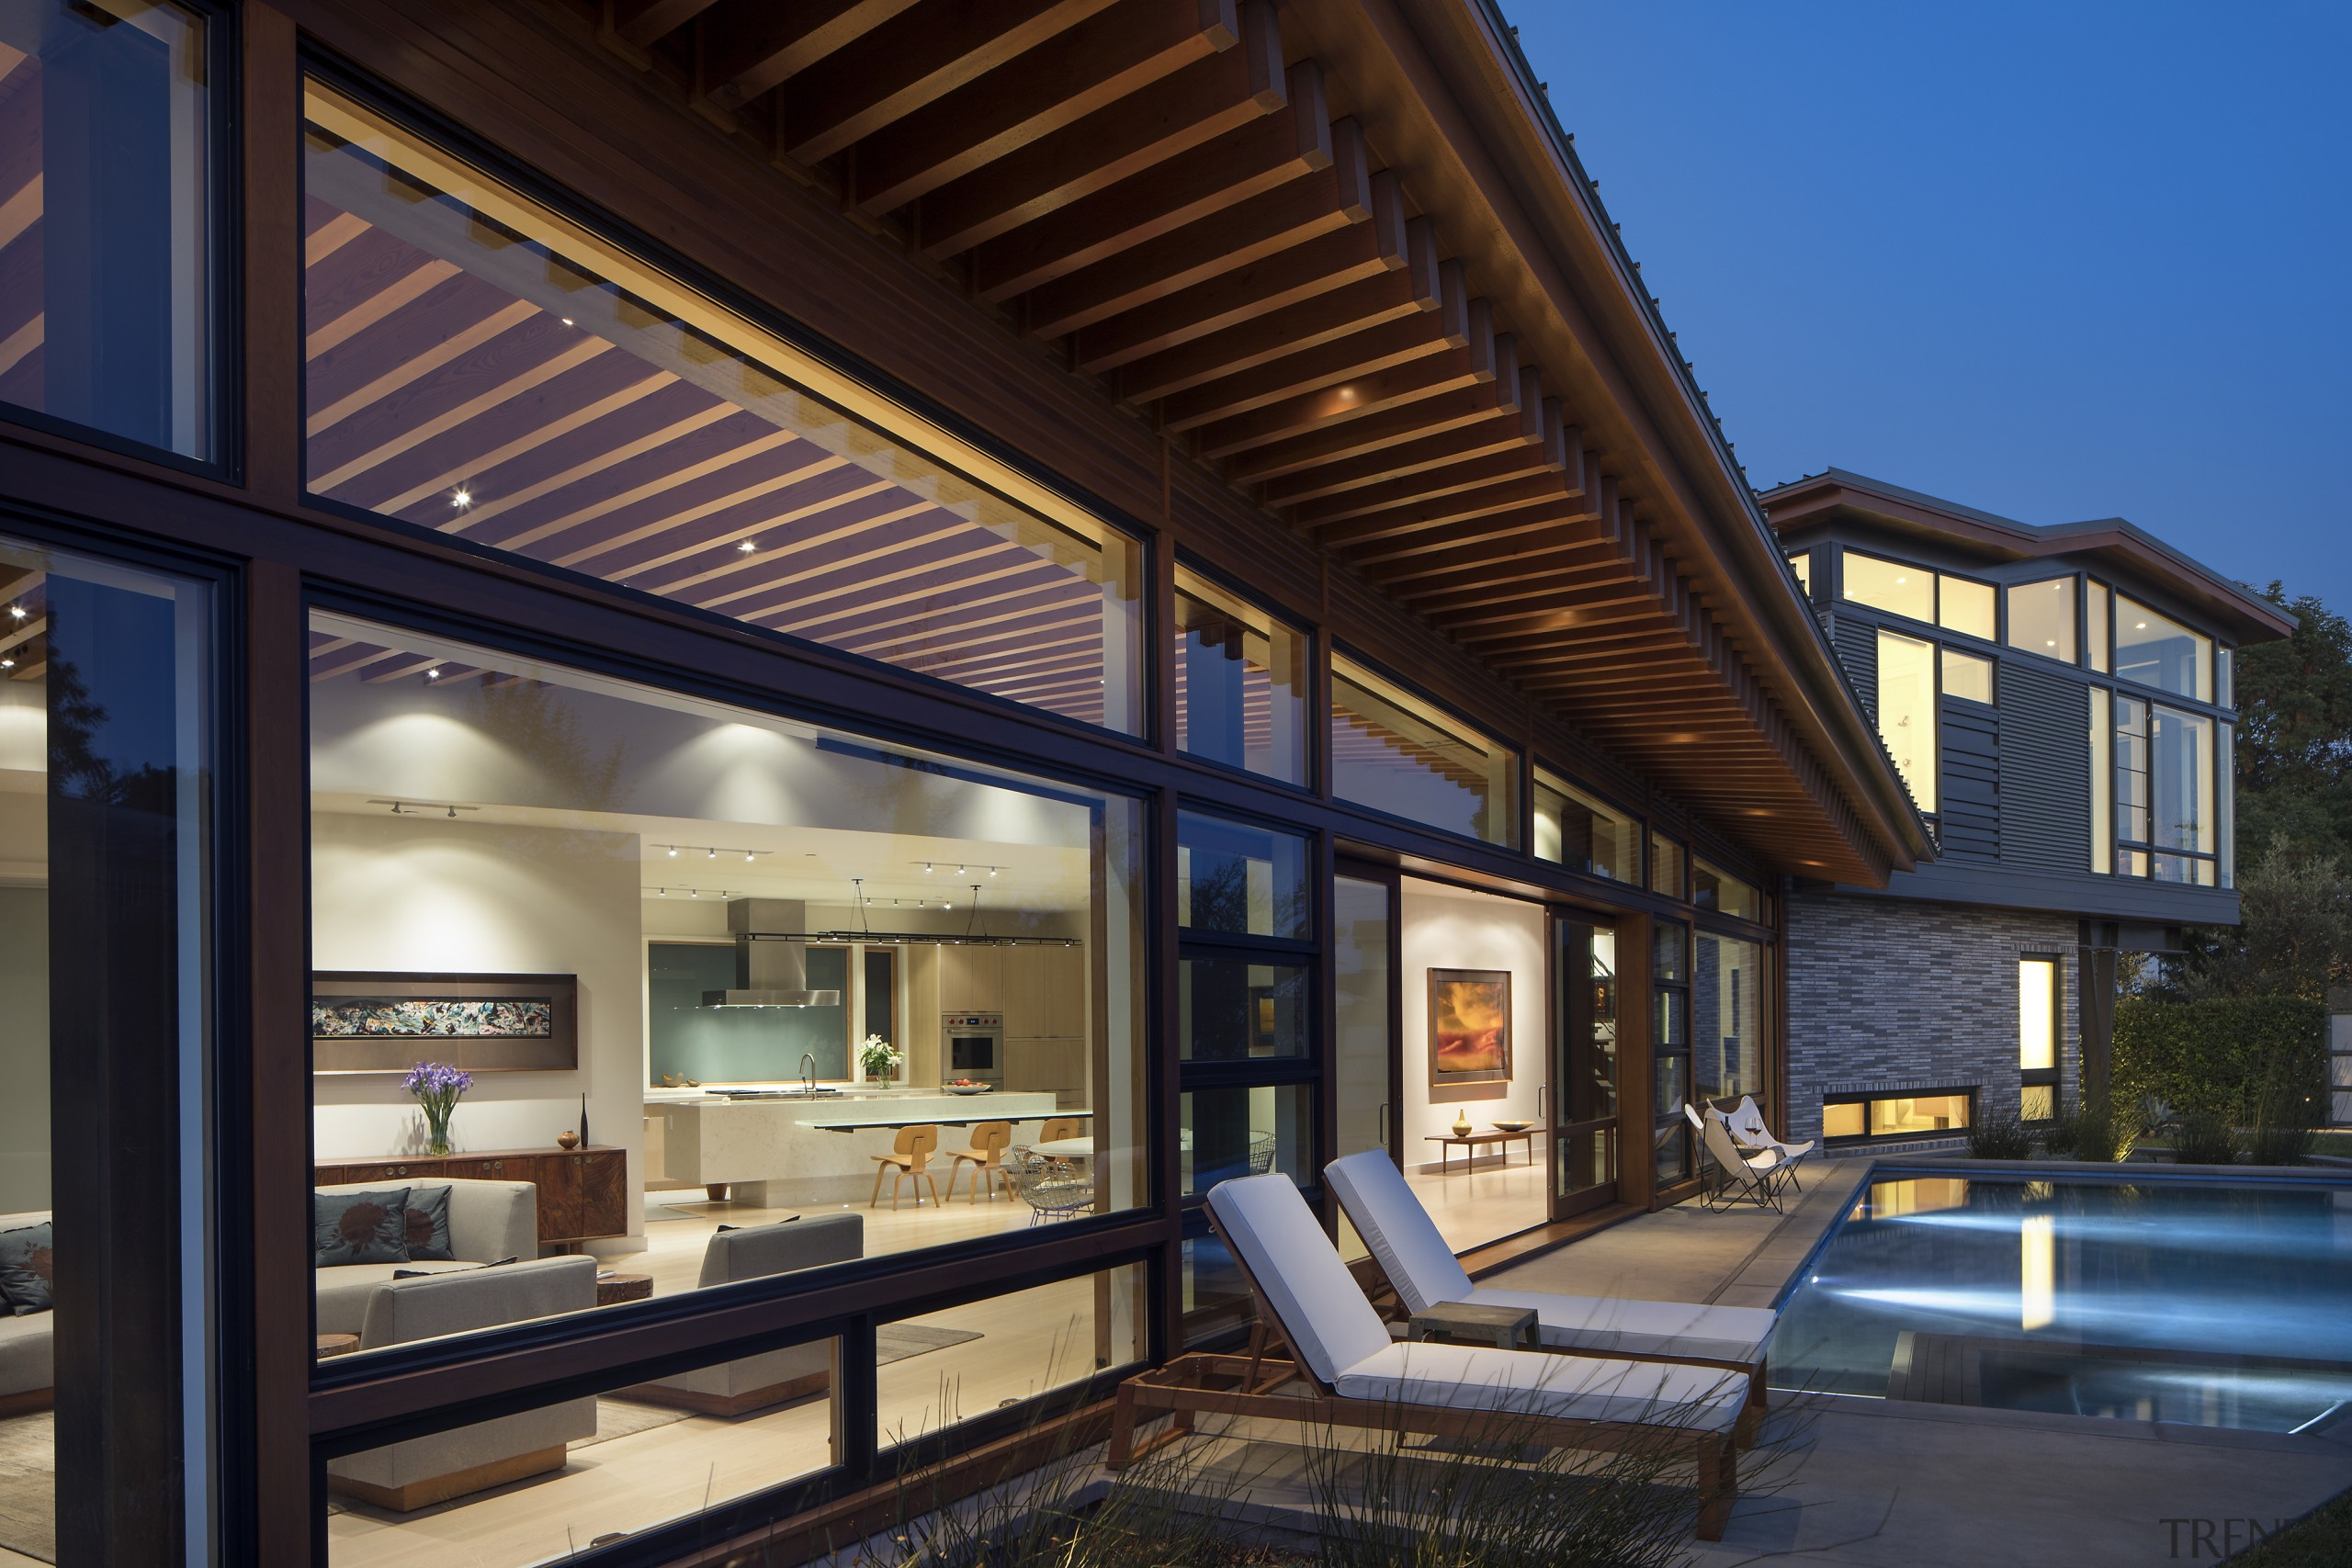 The kitchen is located centrally on the back architecture, home, house, outdoors, pool, Nils Finne, Finne Architecture